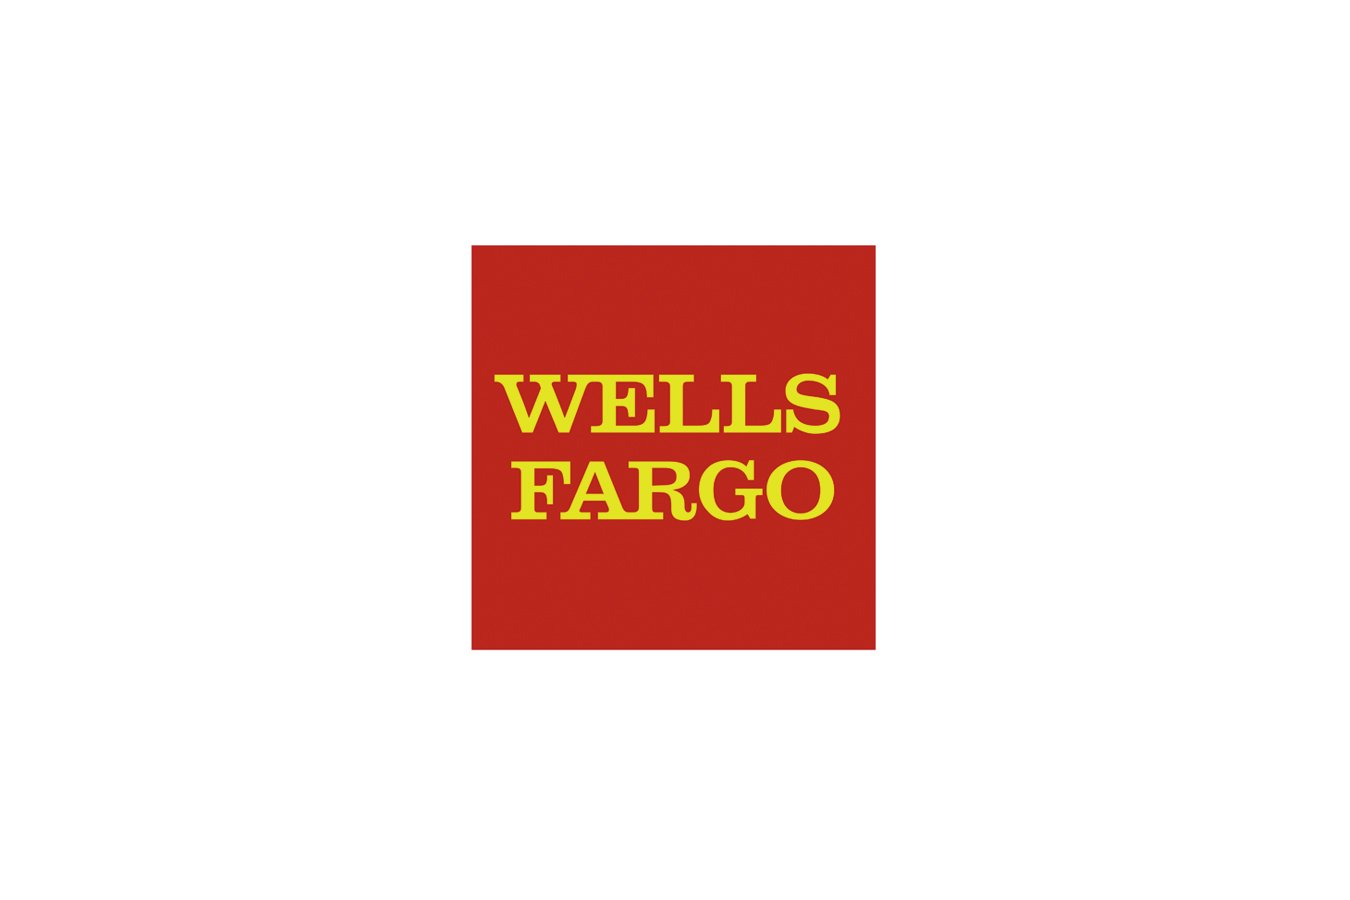 Wells Fargo Png (105+ images in Collection) Page 1.